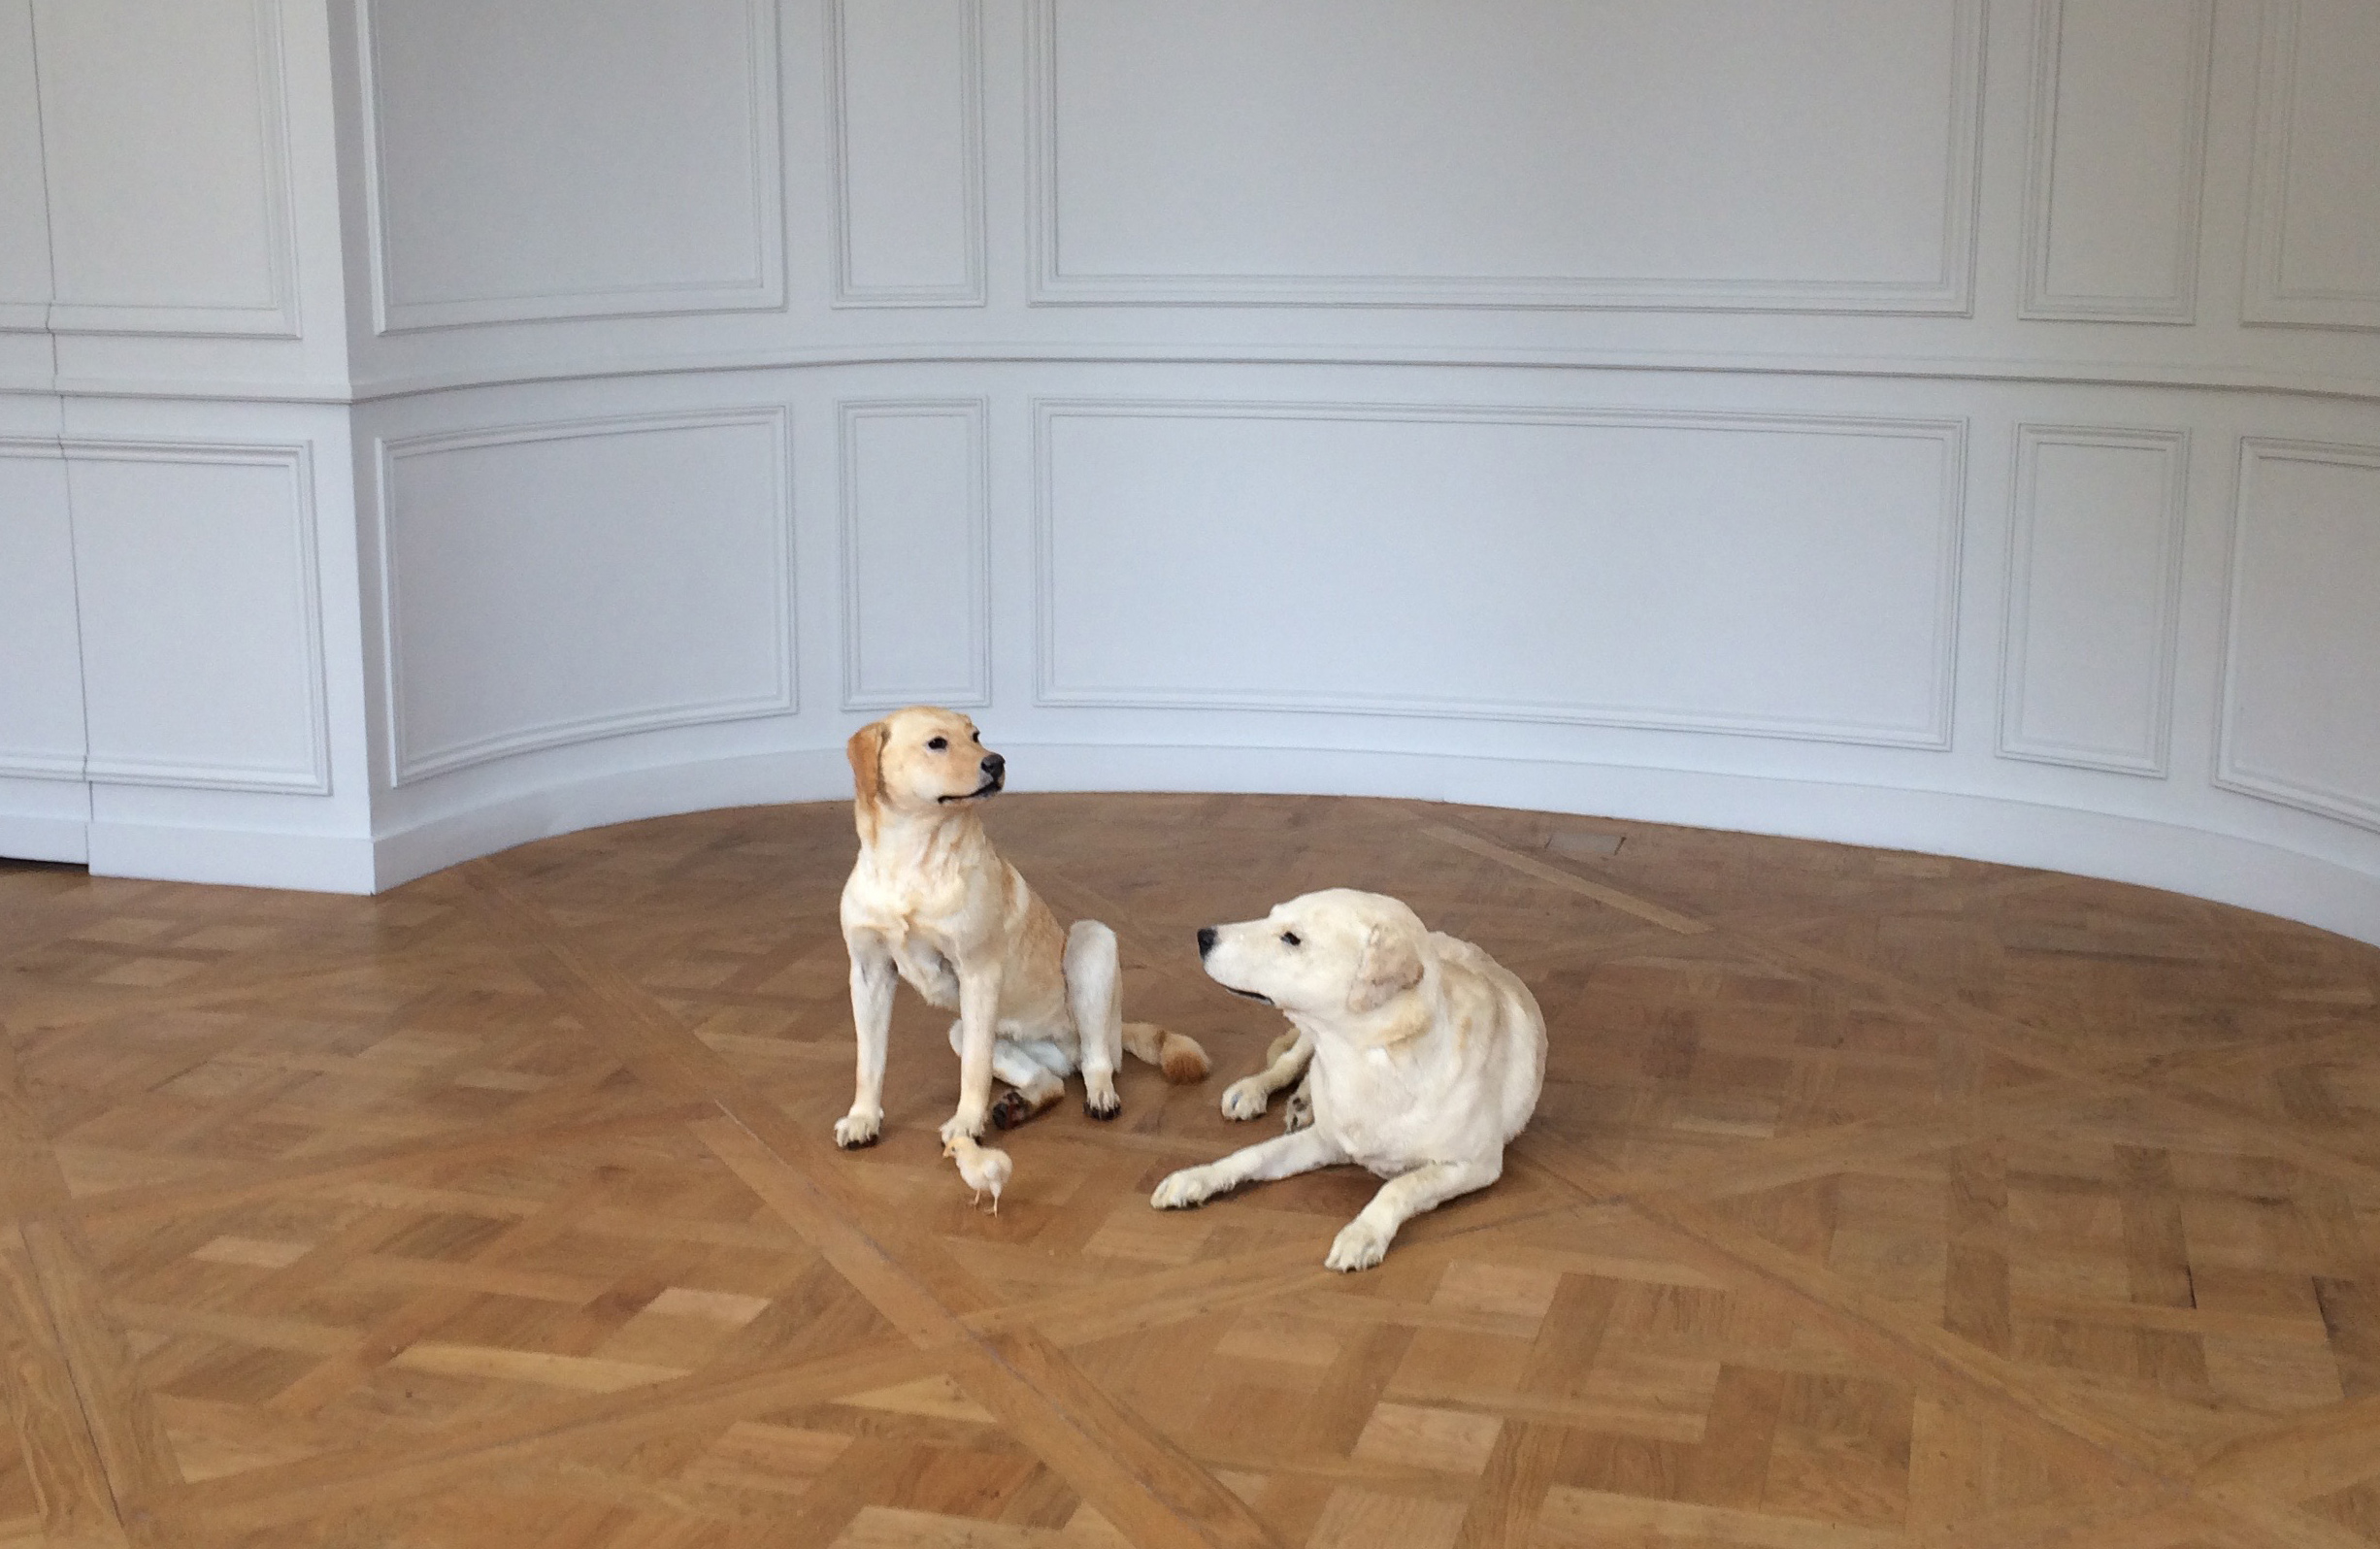 Maurizio Cattelan, Sans titre, 2007, Not Afraid of Love, Monnaie de Paris Octobre 2016